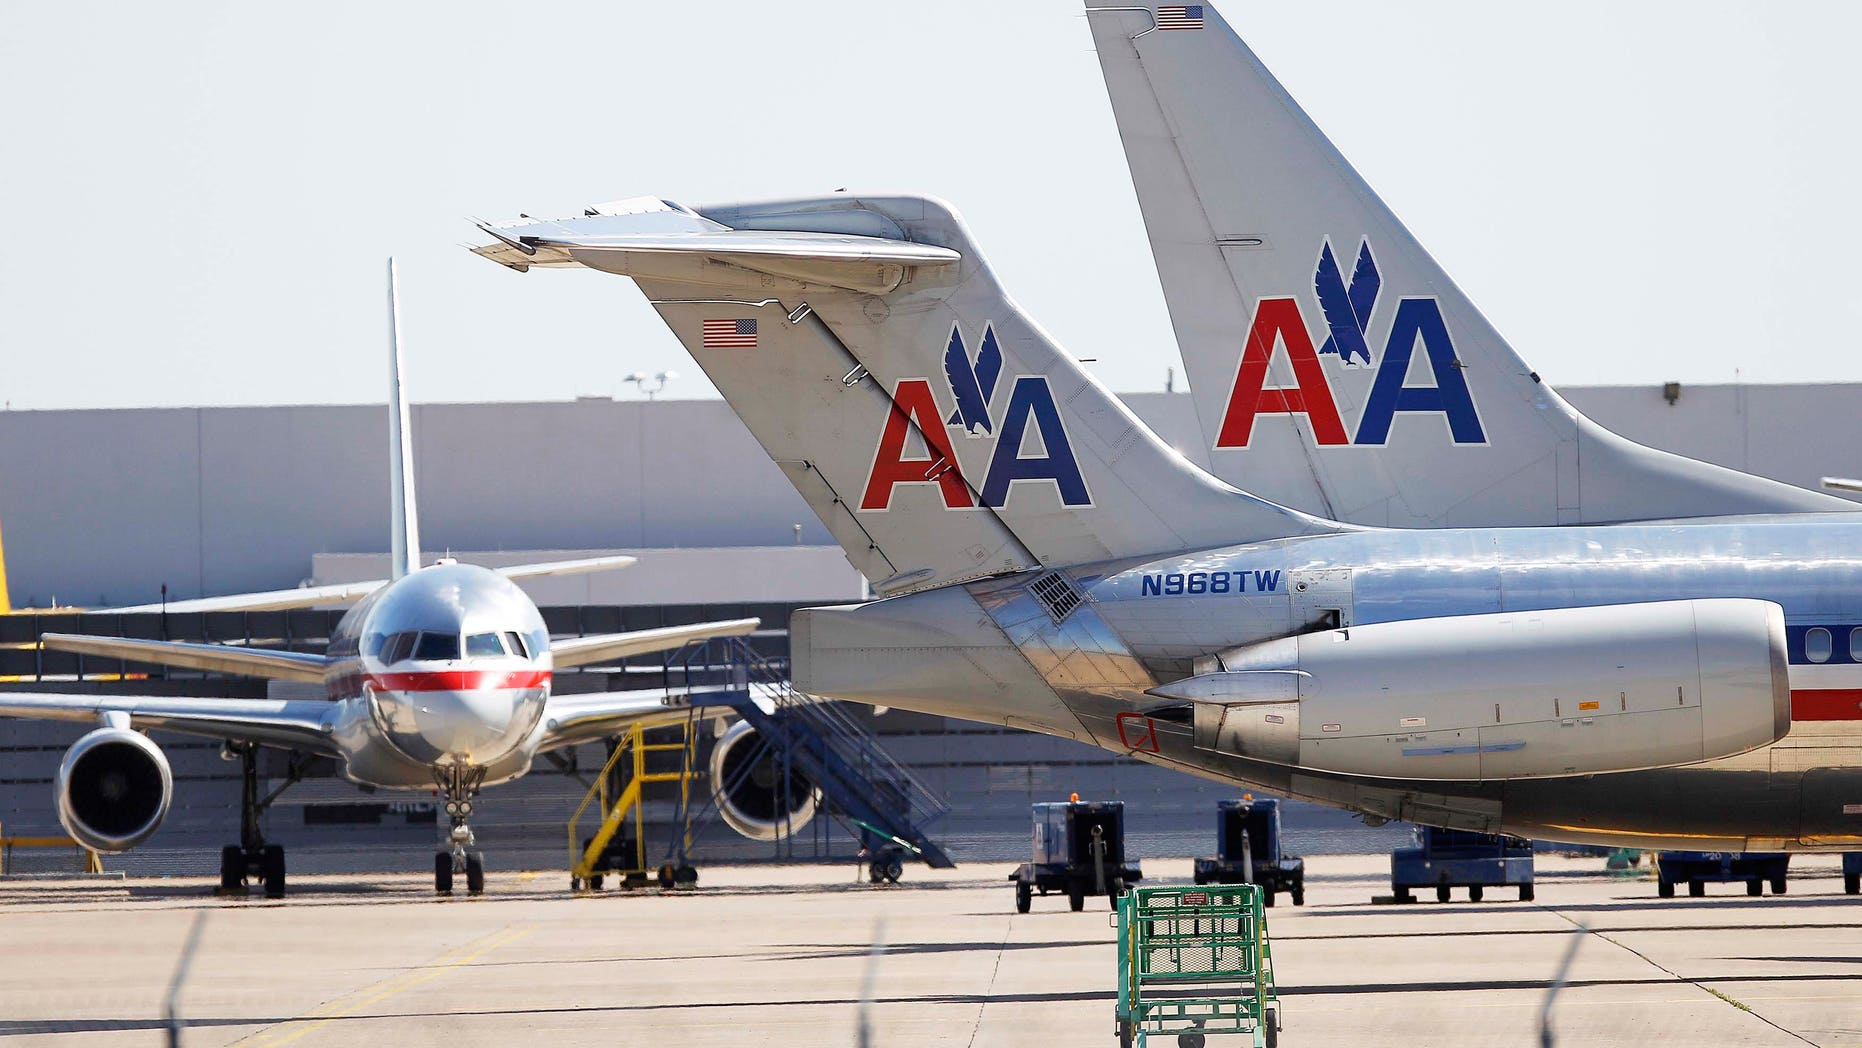 American Airlines airplanes pass by a hanger at Dallas/Fort Worth International Airport.